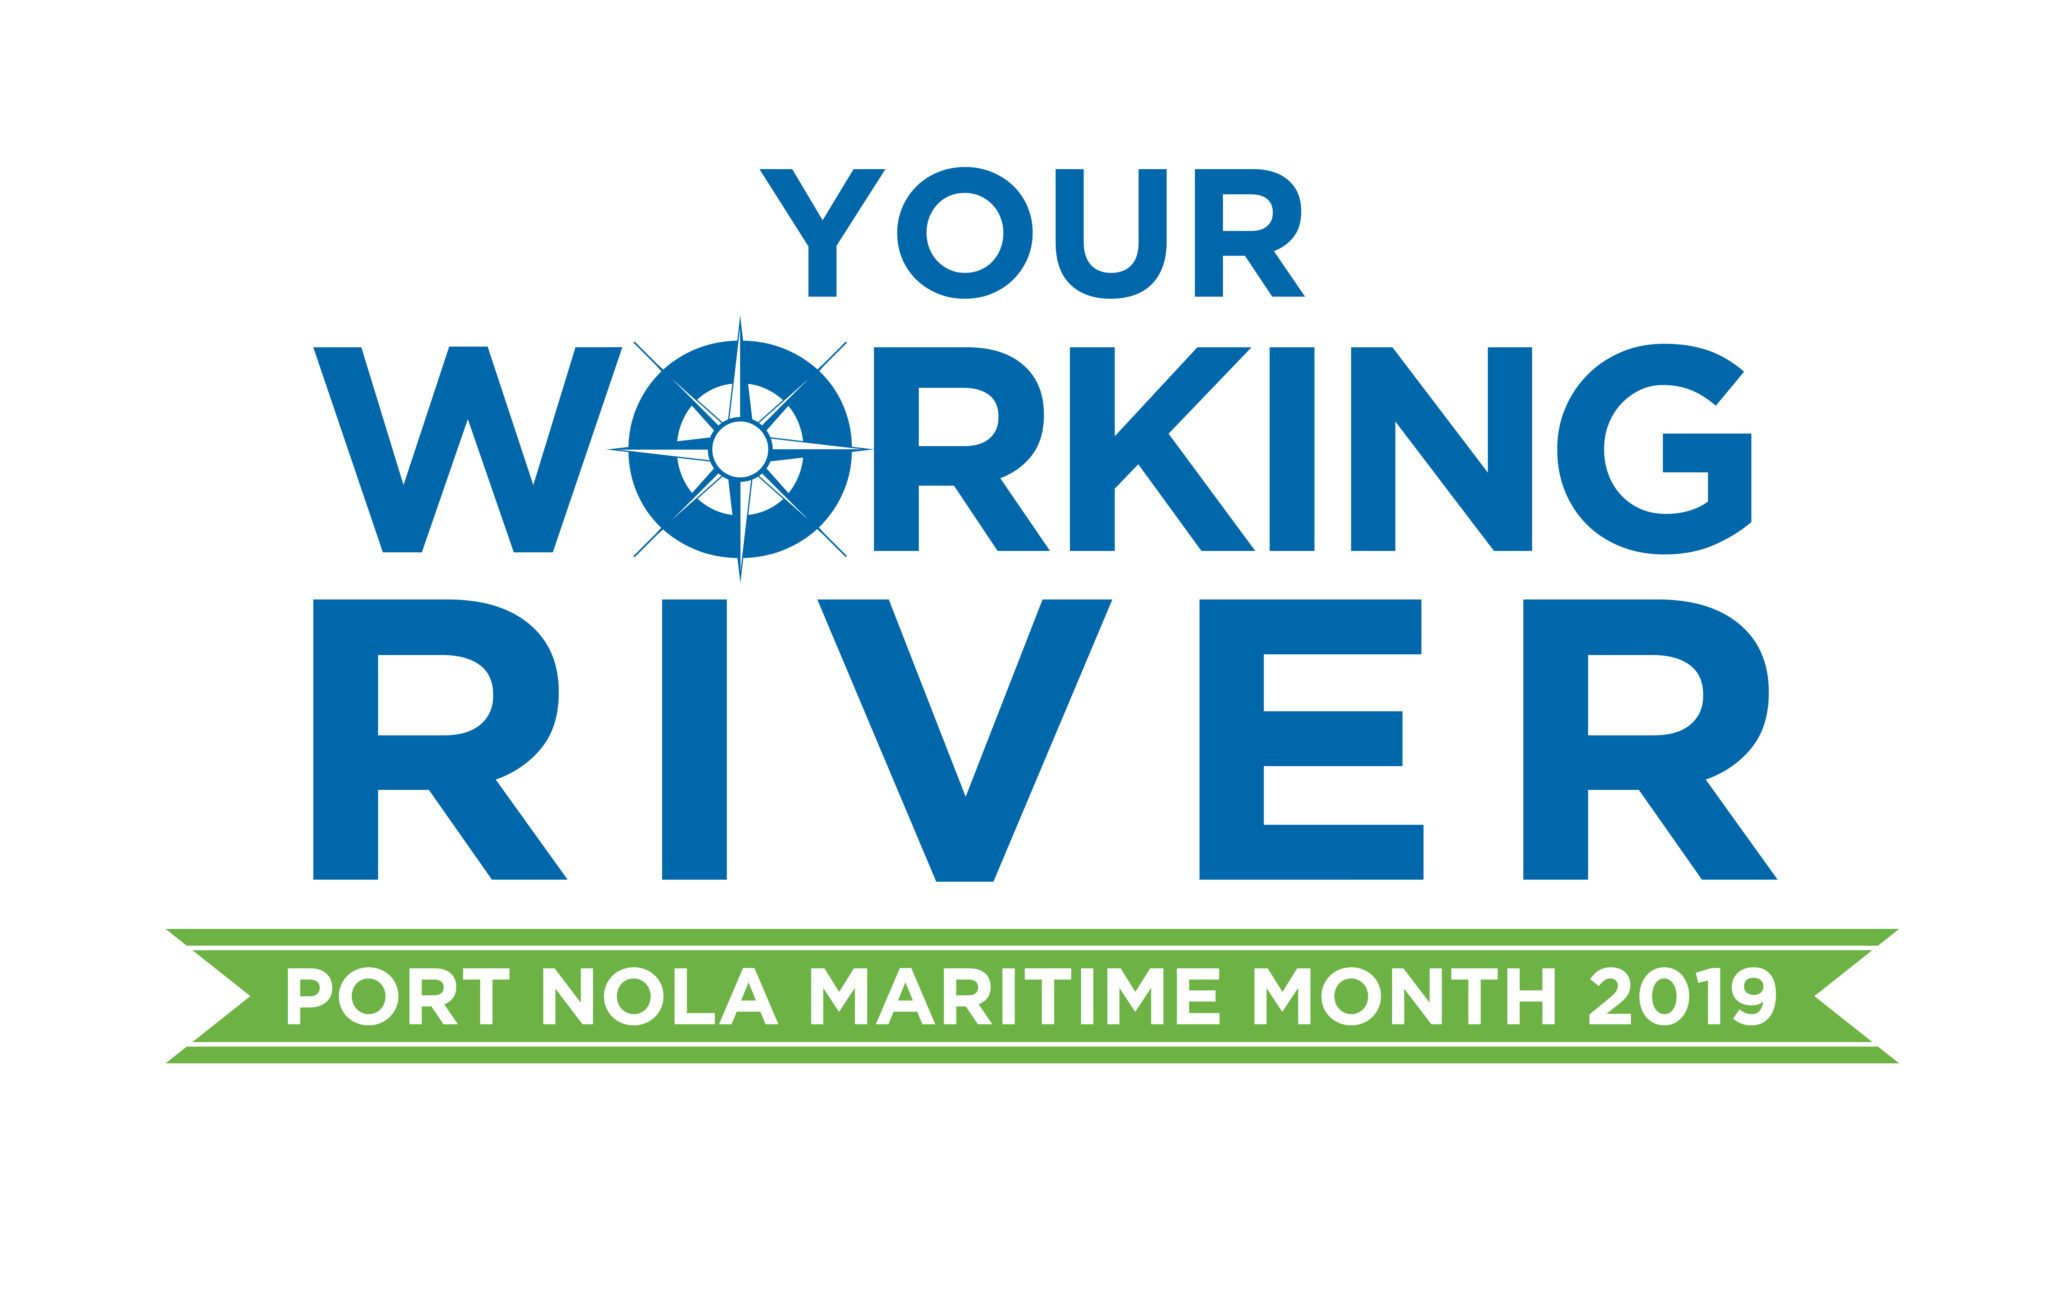 Port Nola 2019 Maritime Month Logo Crop